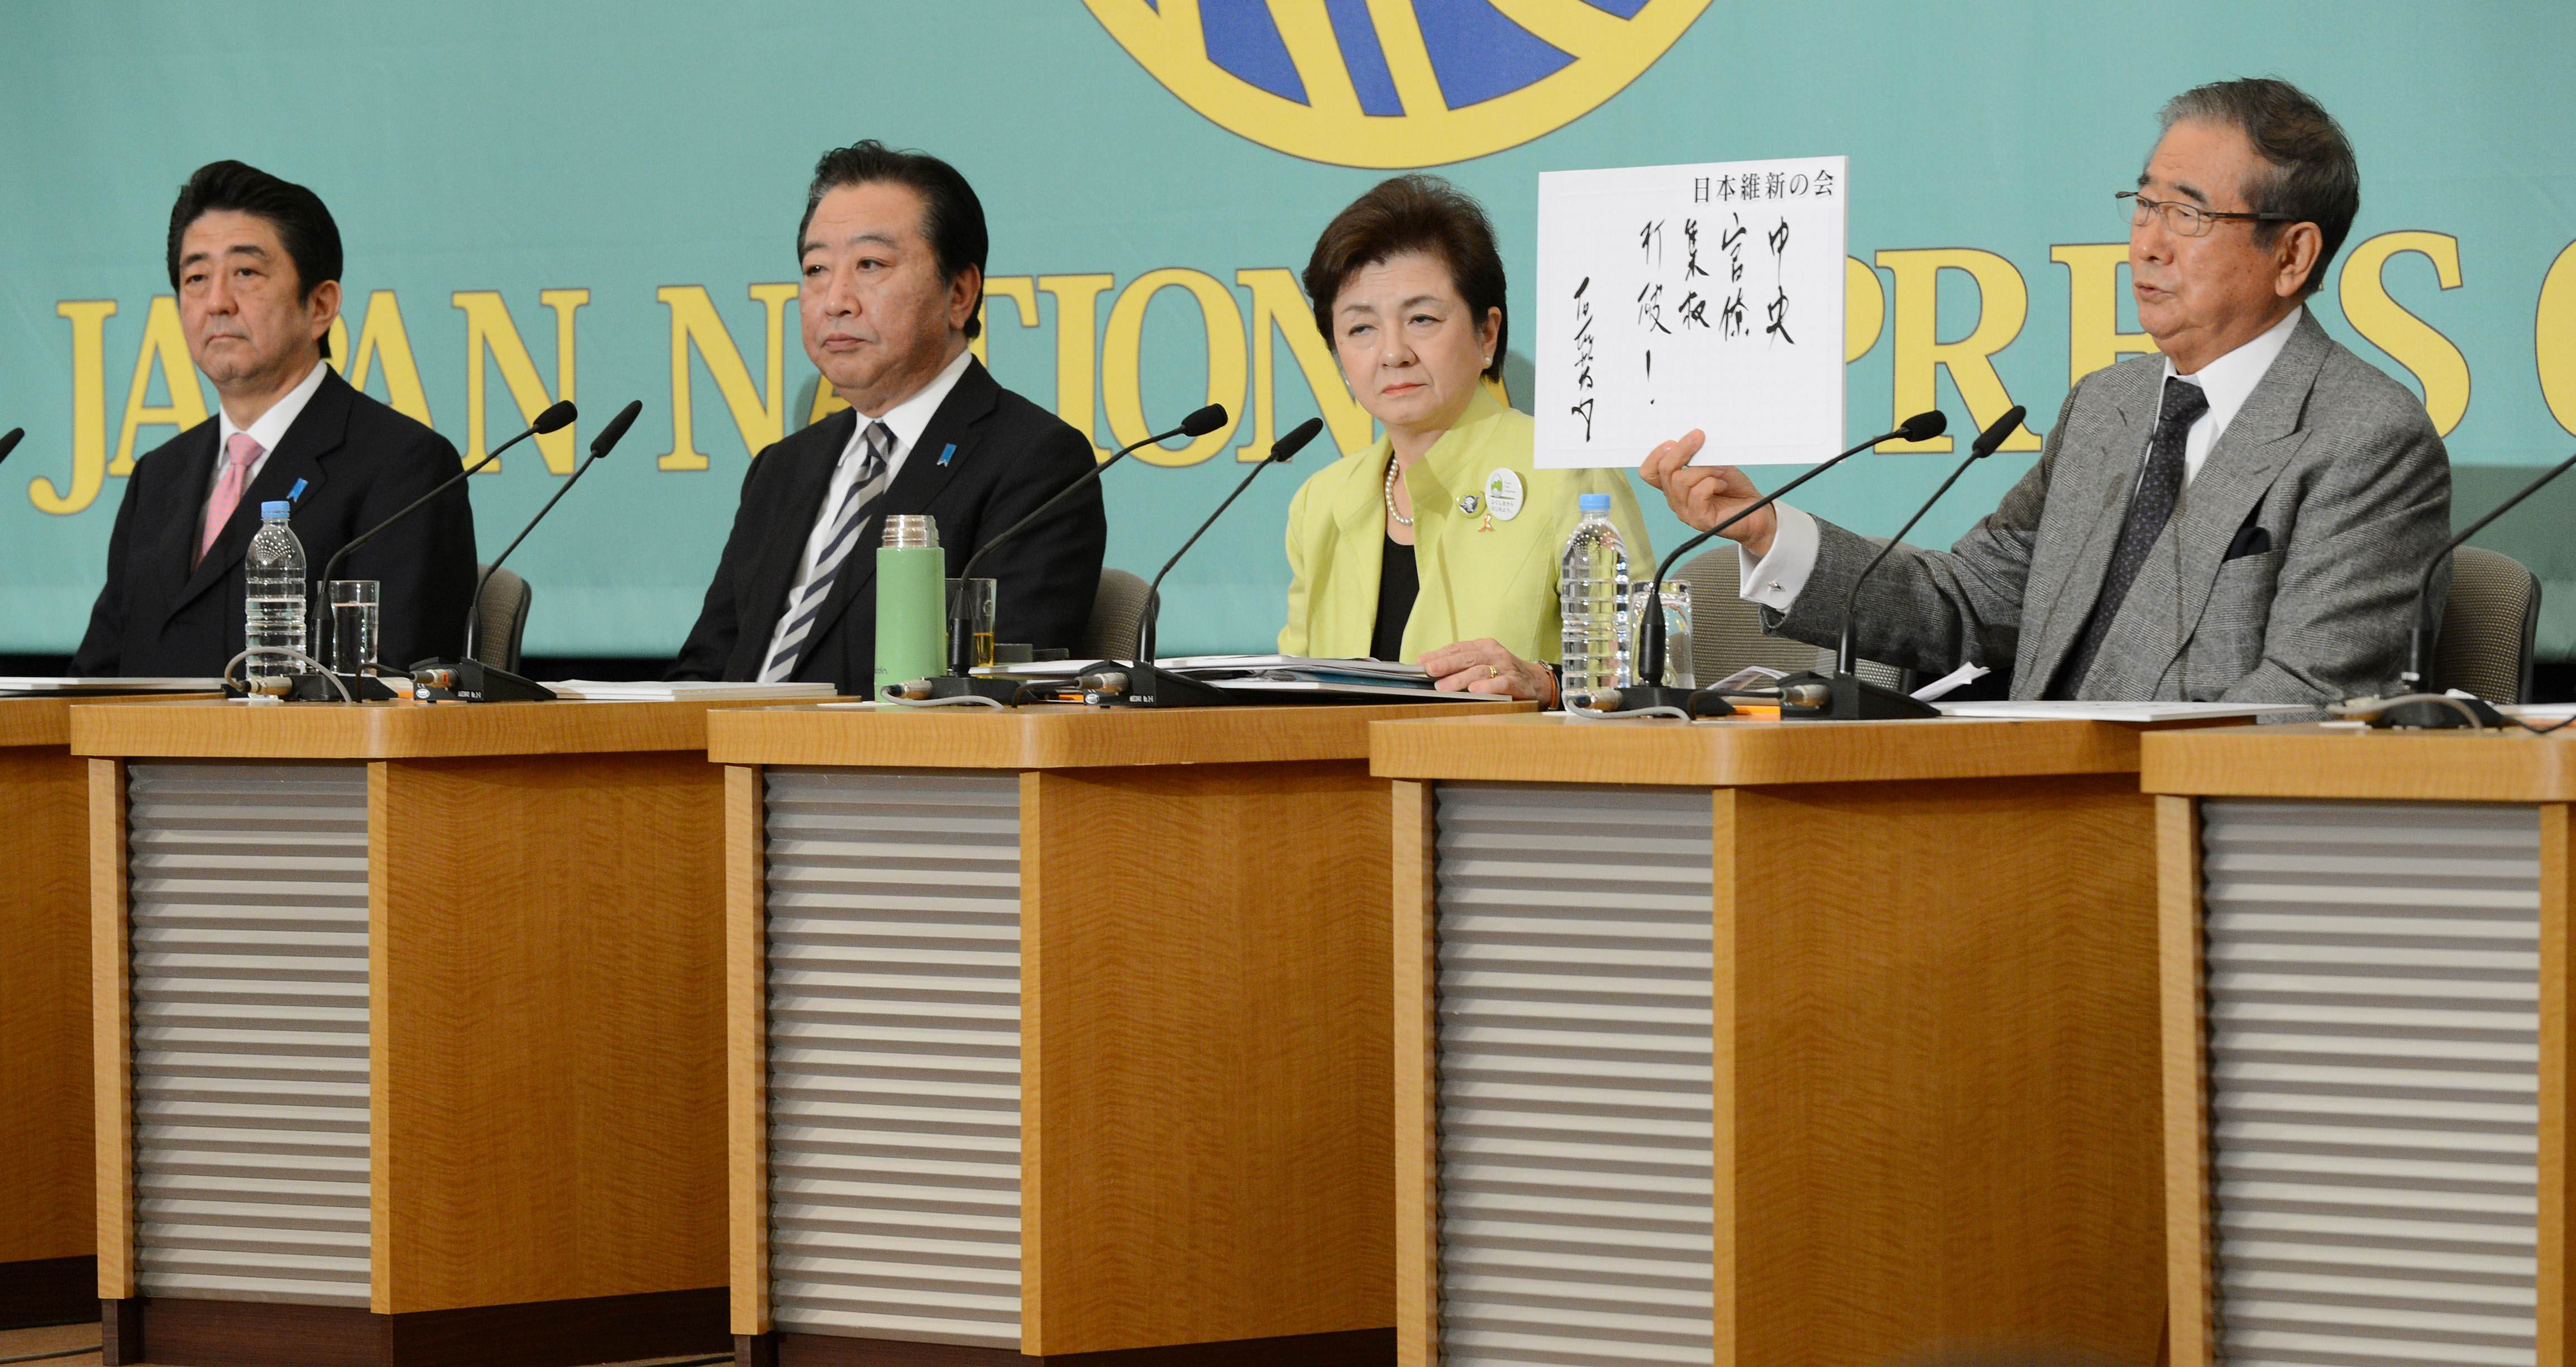 Agreeing to disagree: Nippon Ishin no Kai leader Shintaro Ishihara holds a sign at a debate with 10 other party chiefs at the Japan National Press Club in Tokyo on Friday, including (left to right) Liberal Democratic Party President Shinzo Abe, Democratic Party of Japan leader Yoshihiko Noda and Nippon Mirai no To head Yukiko Kada. | AFP-JIJI